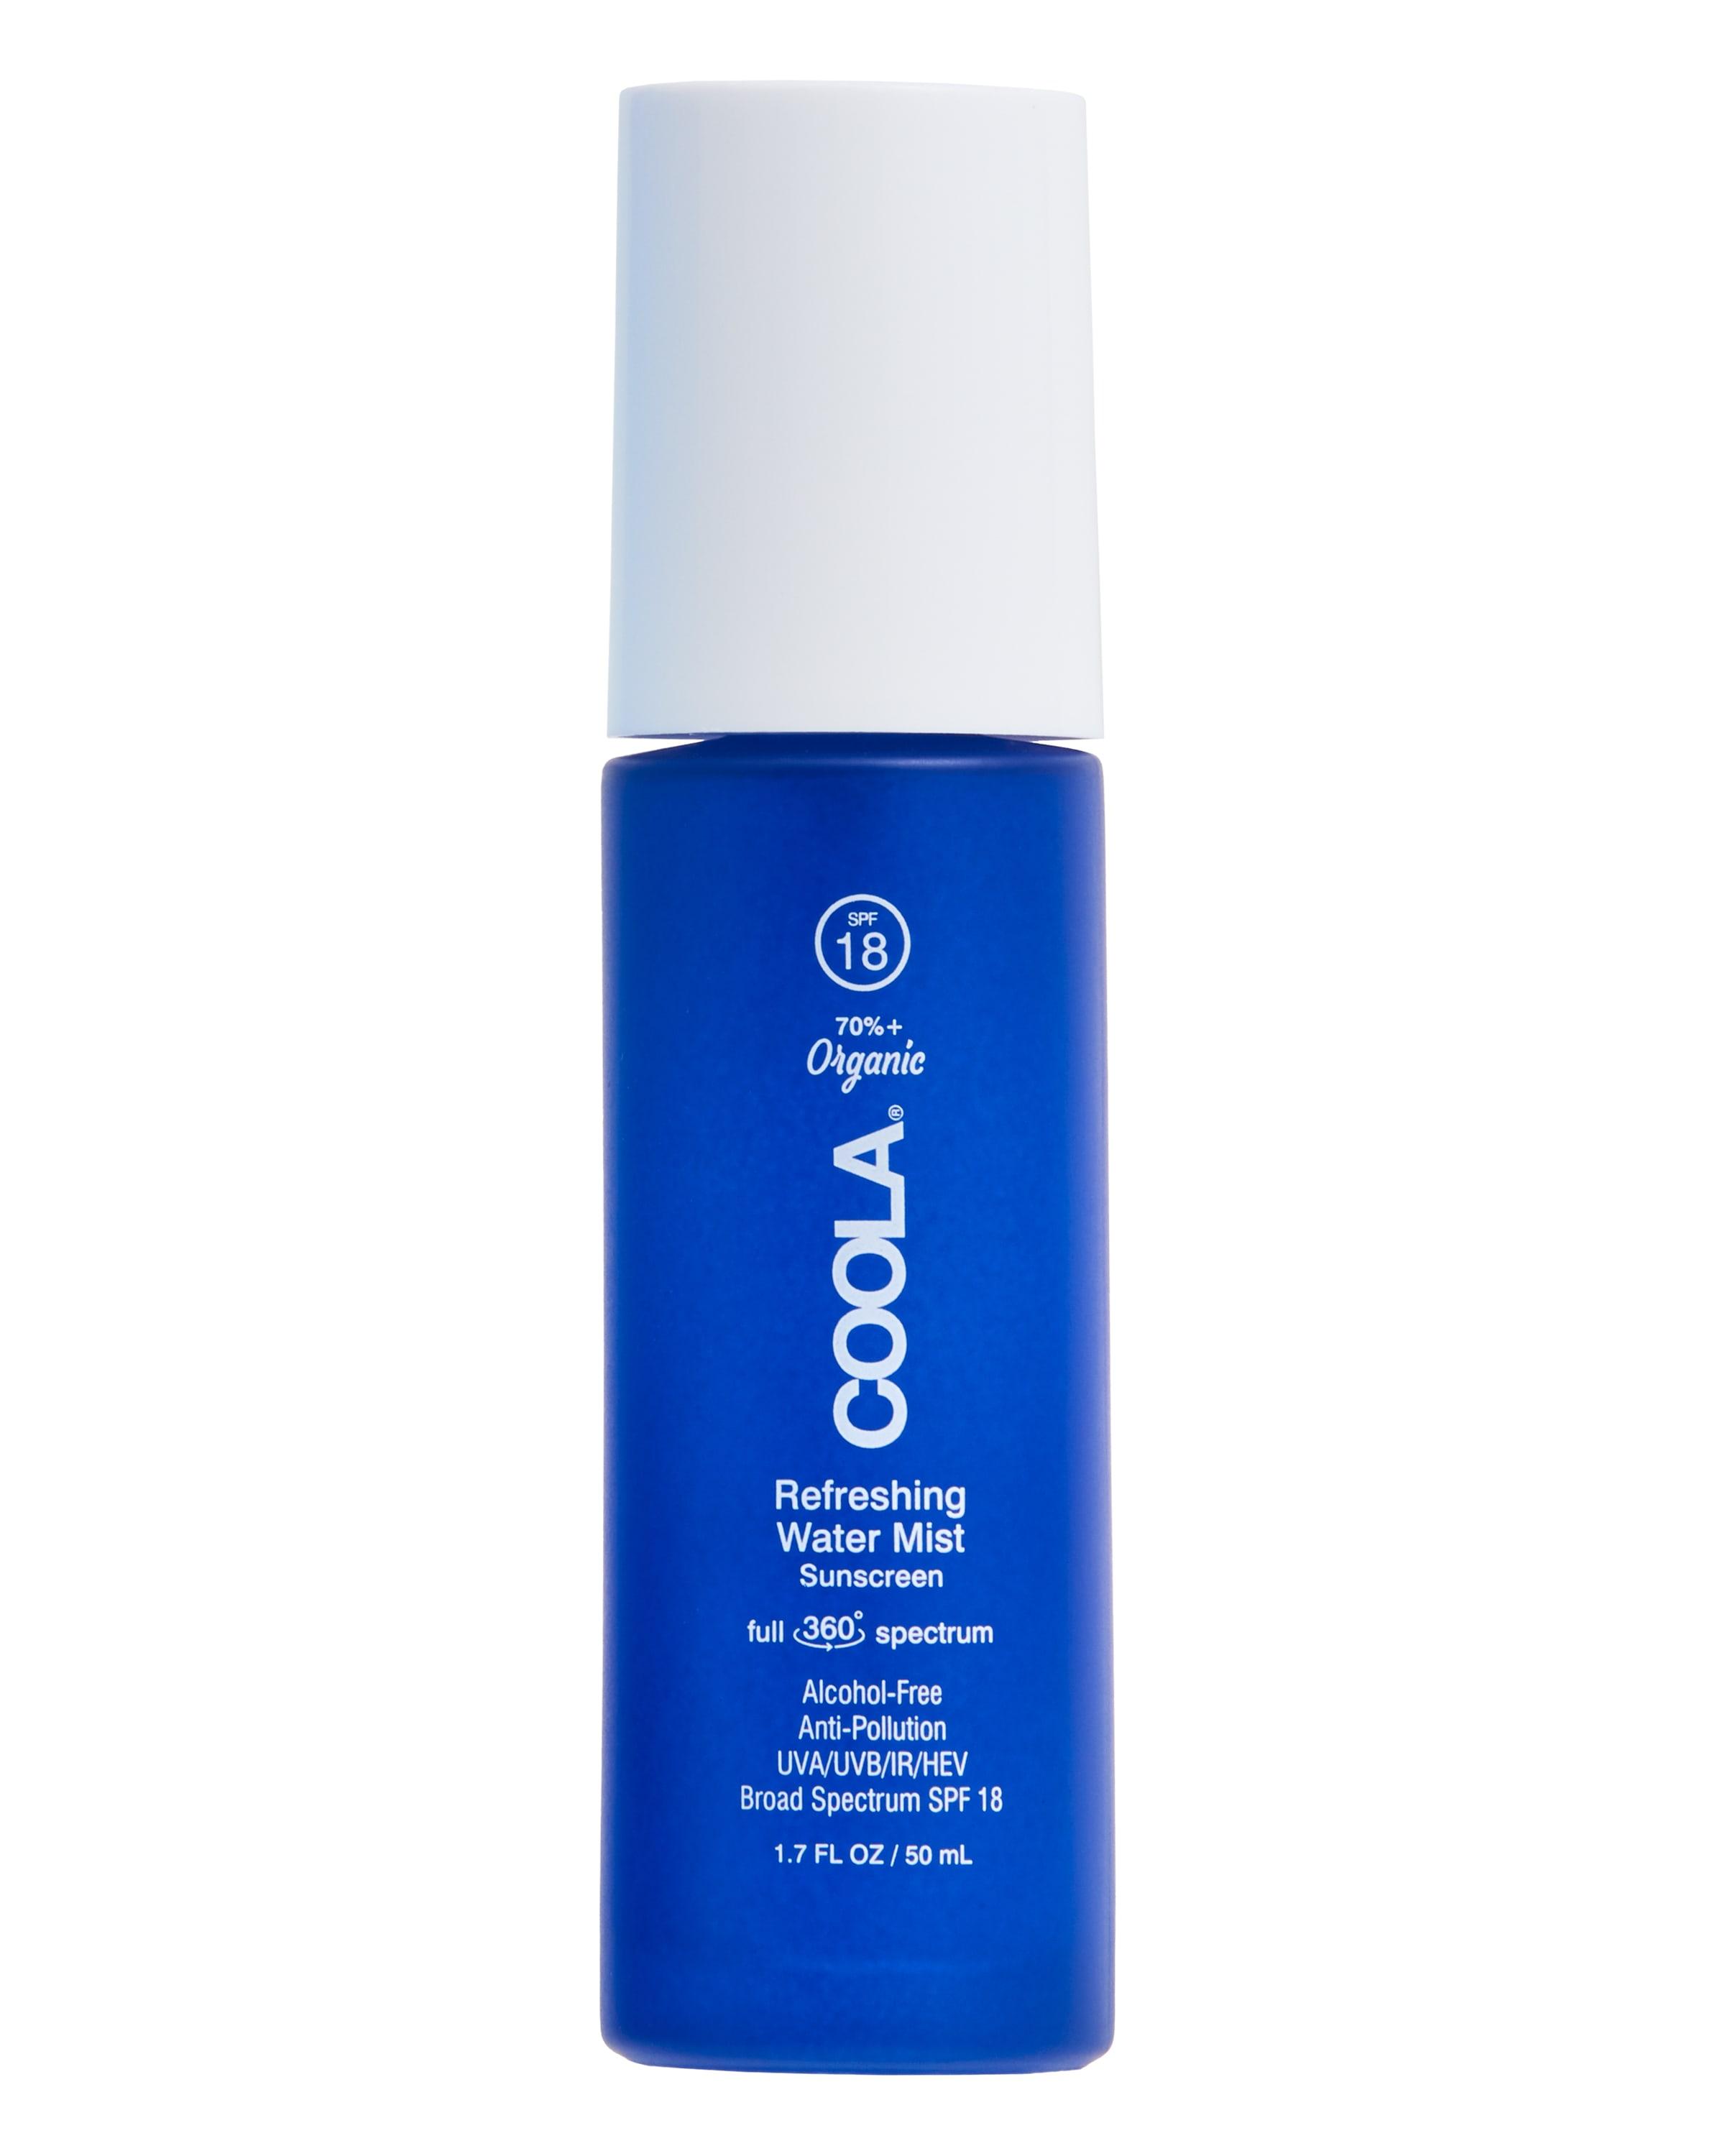 COOLA Full Spectrum 360° Refreshing Water Mist Organic Face Sunscreen, SPF 18 - 1.7 fl oz